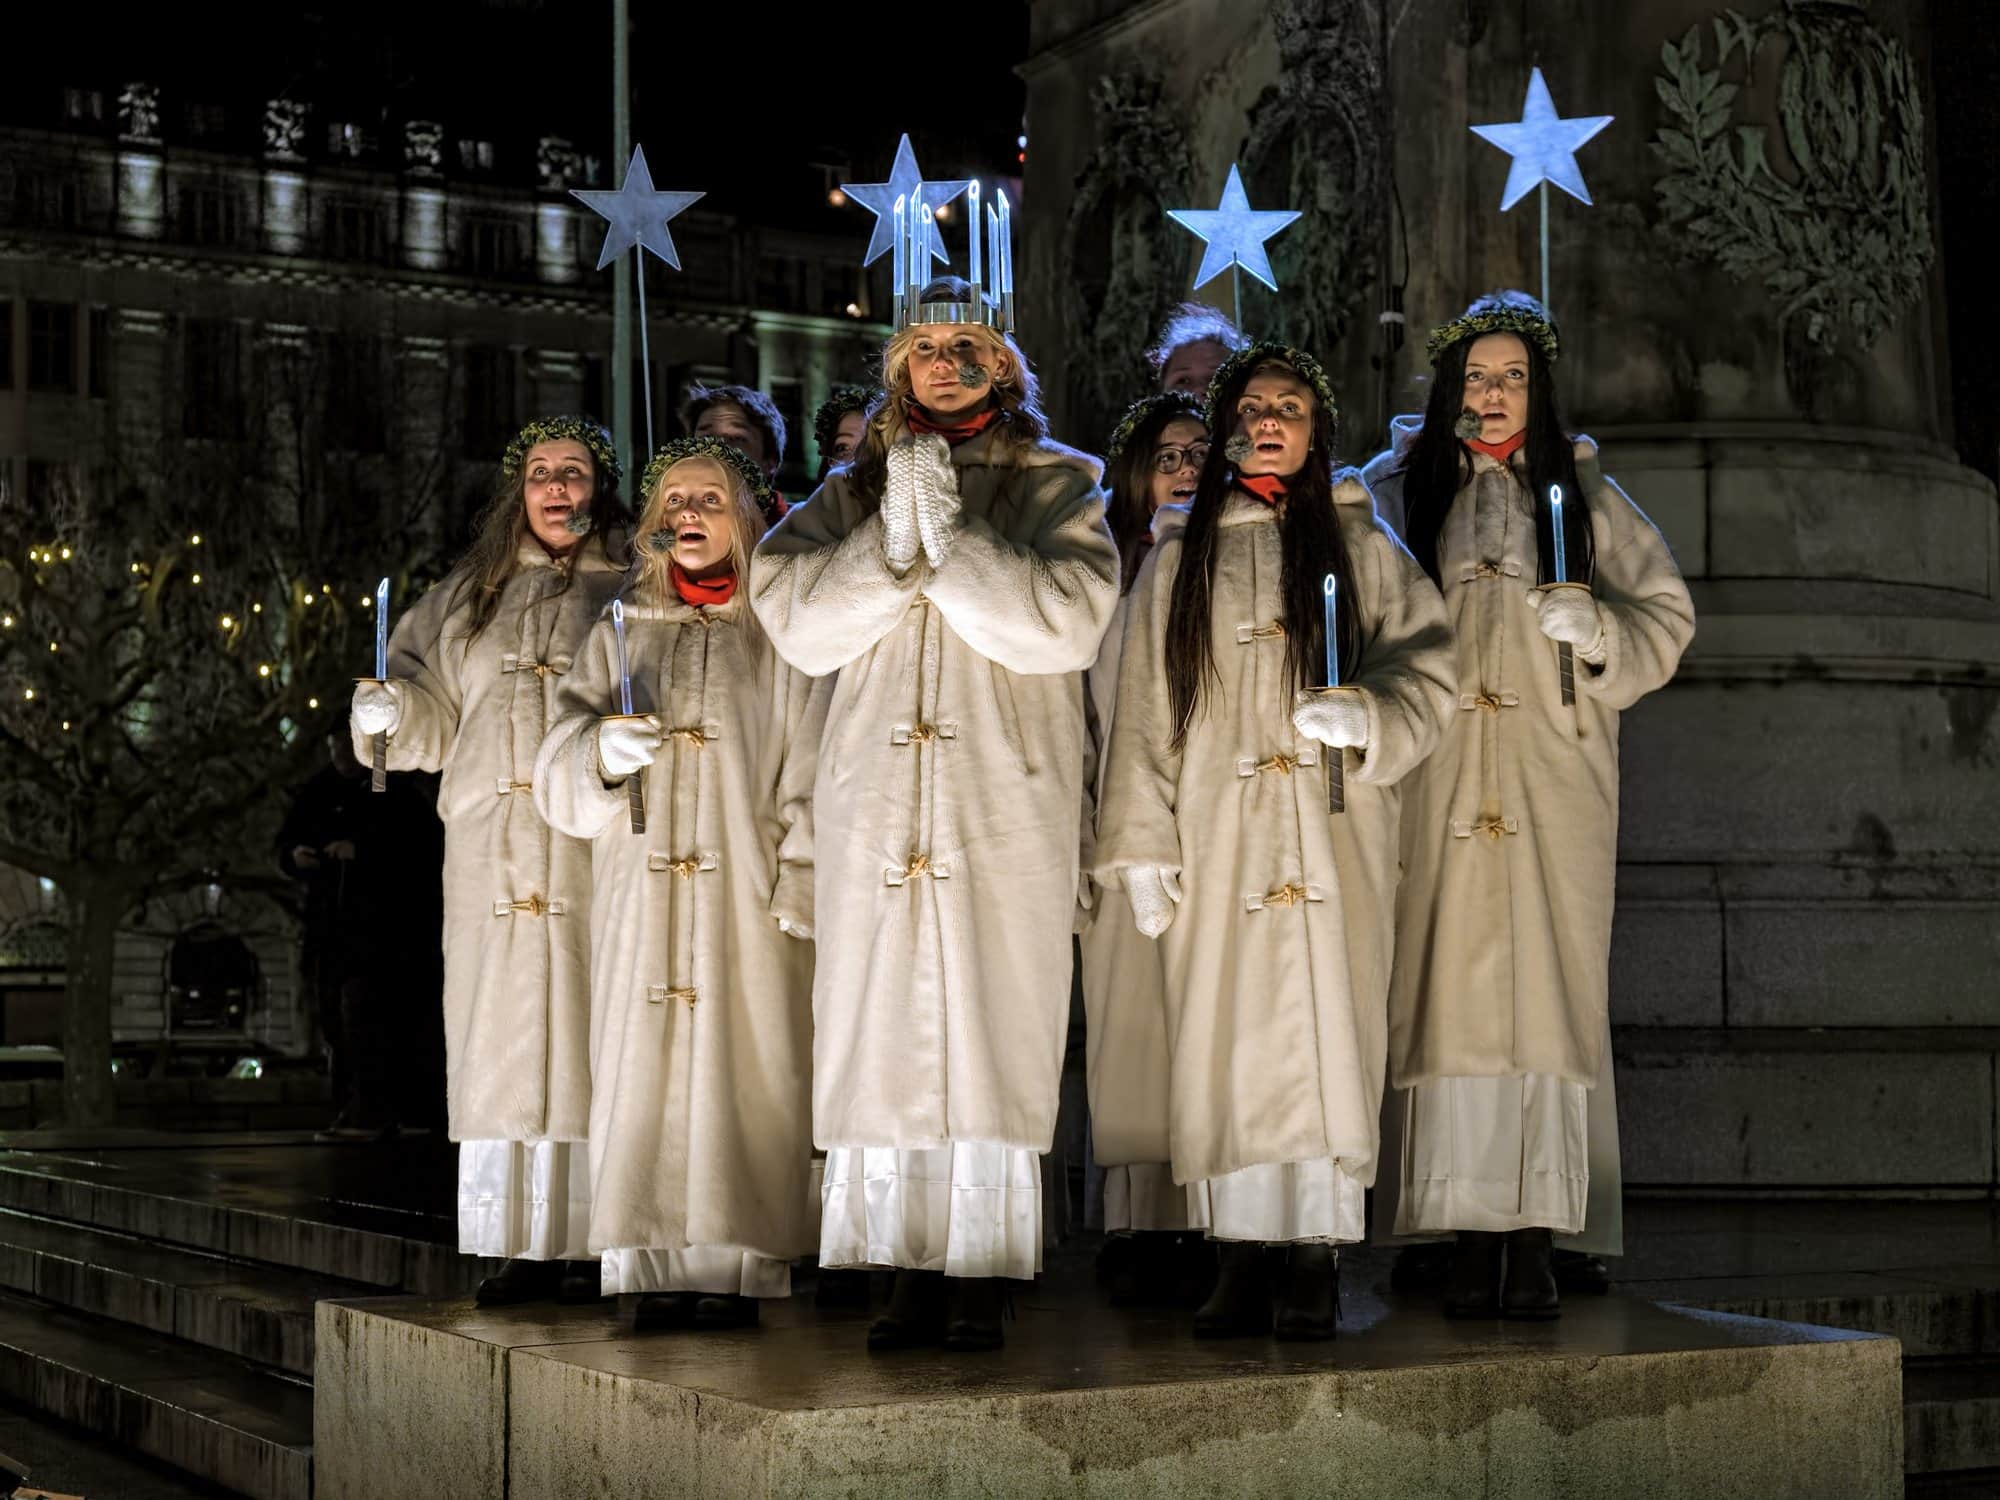 Celebration of St Lucy's Day in Sweden